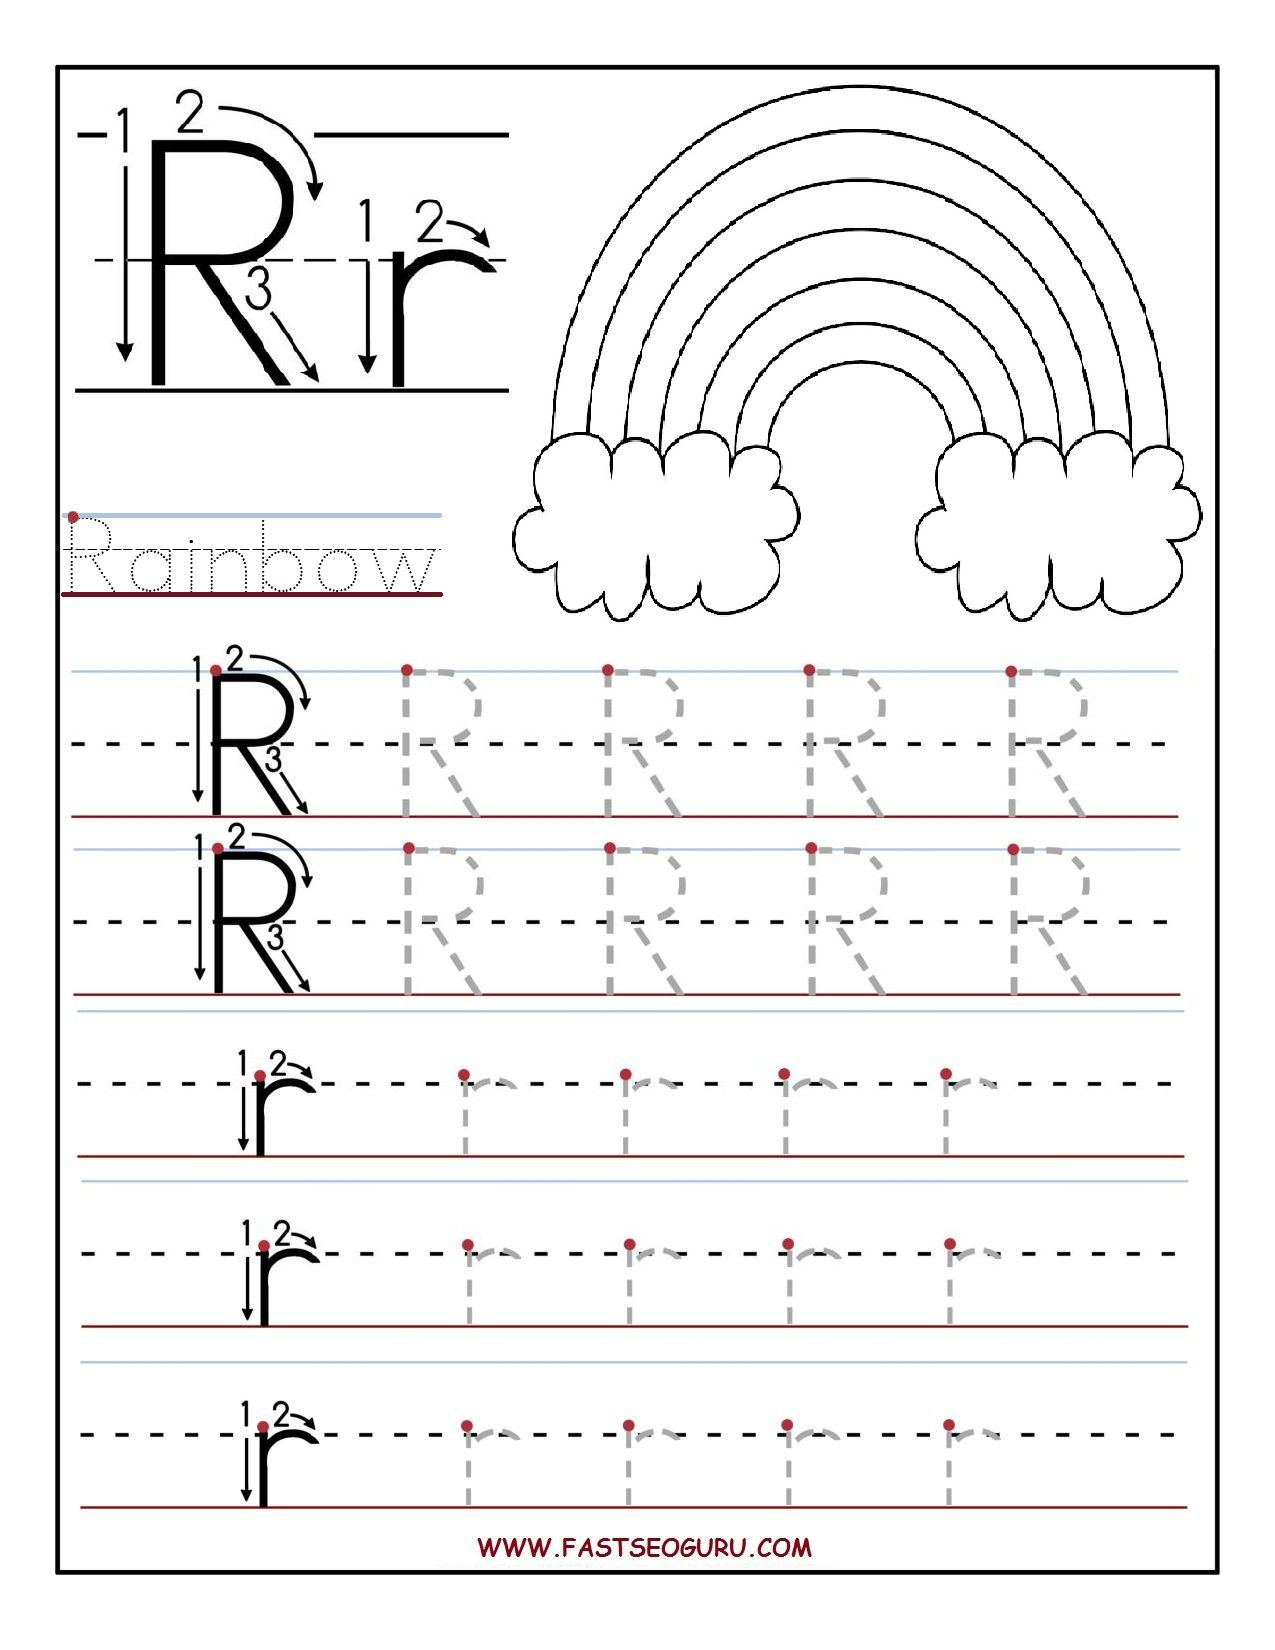 Printable Letter R Tracing Worksheets For Preschool | Teacher - Free | Free Printable Worksheets For Preschool Teachers